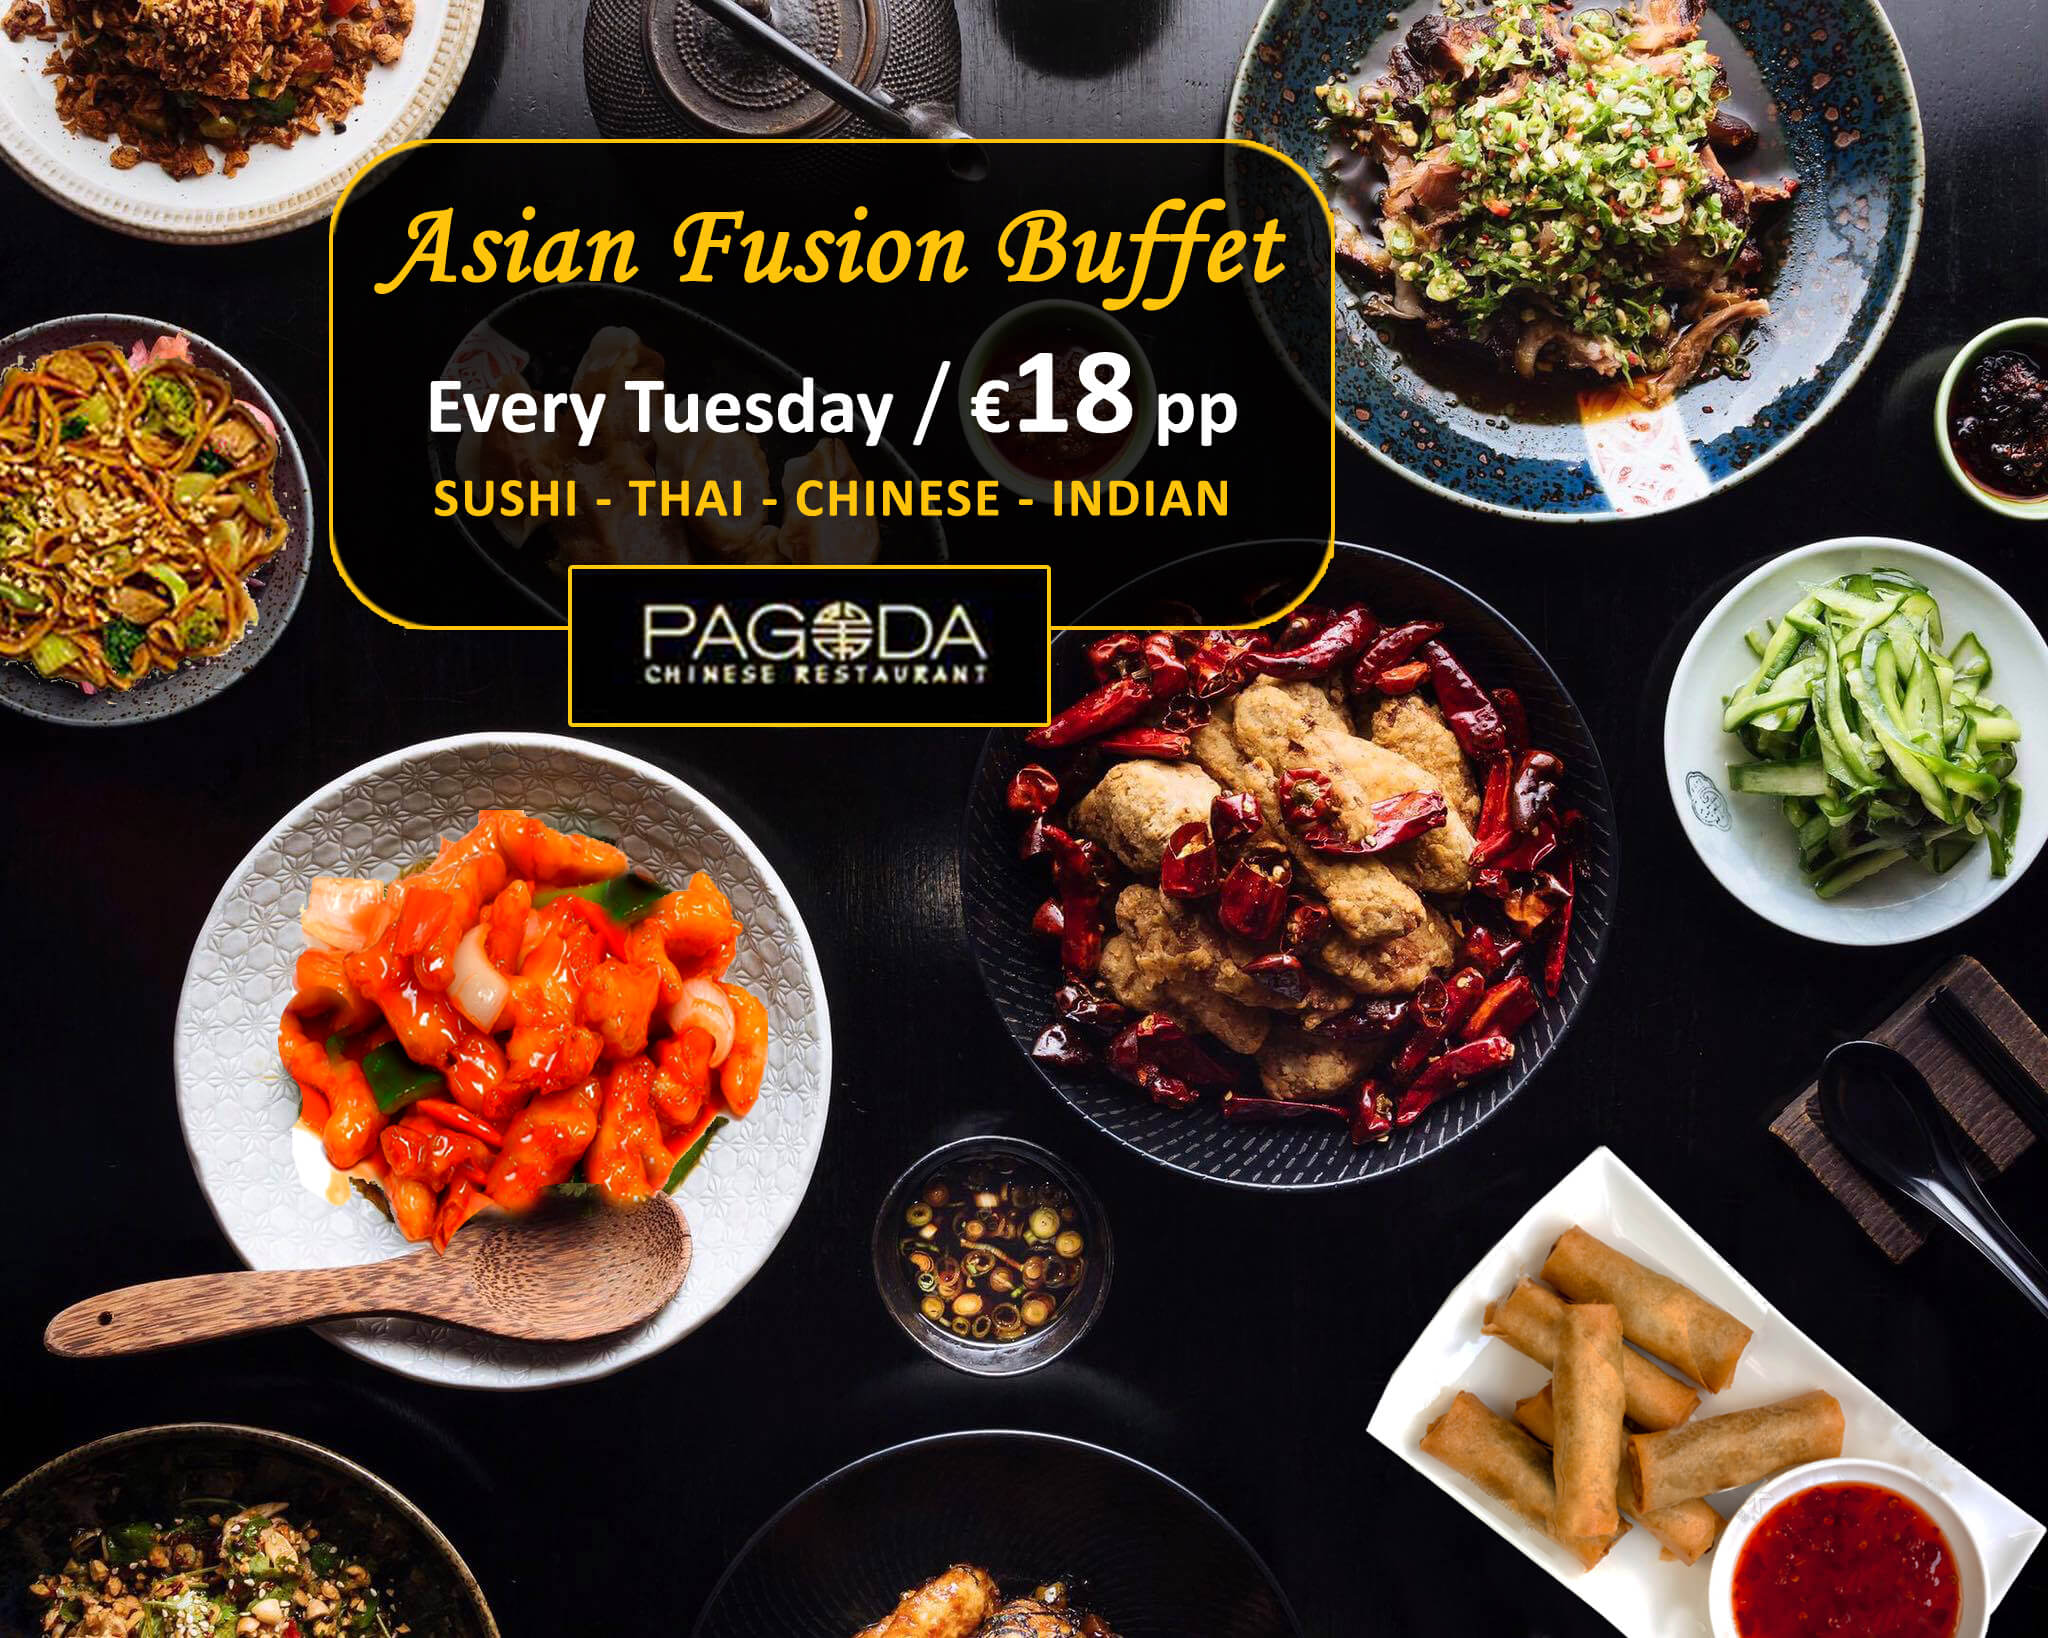 ASIAN TUESDAYS AT PAGODA